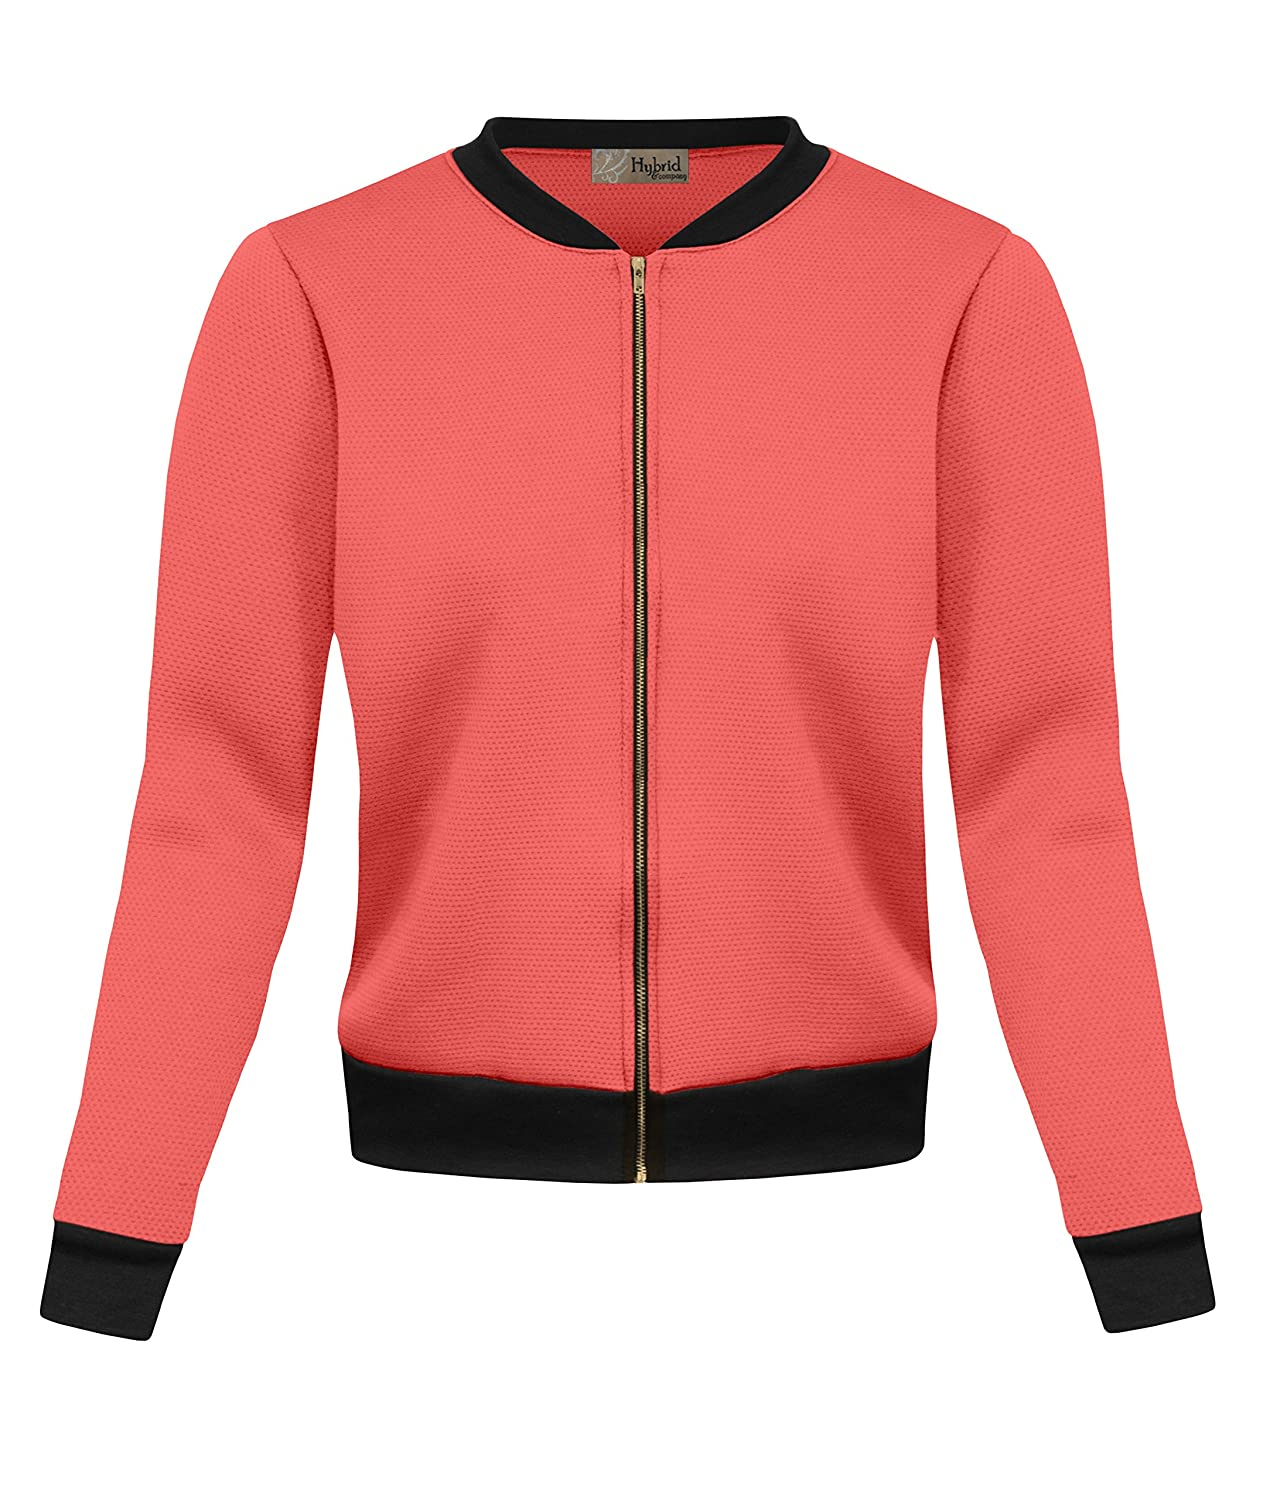 HyBrid & Company Womens Fashion Color Zip up Bomber Jacket